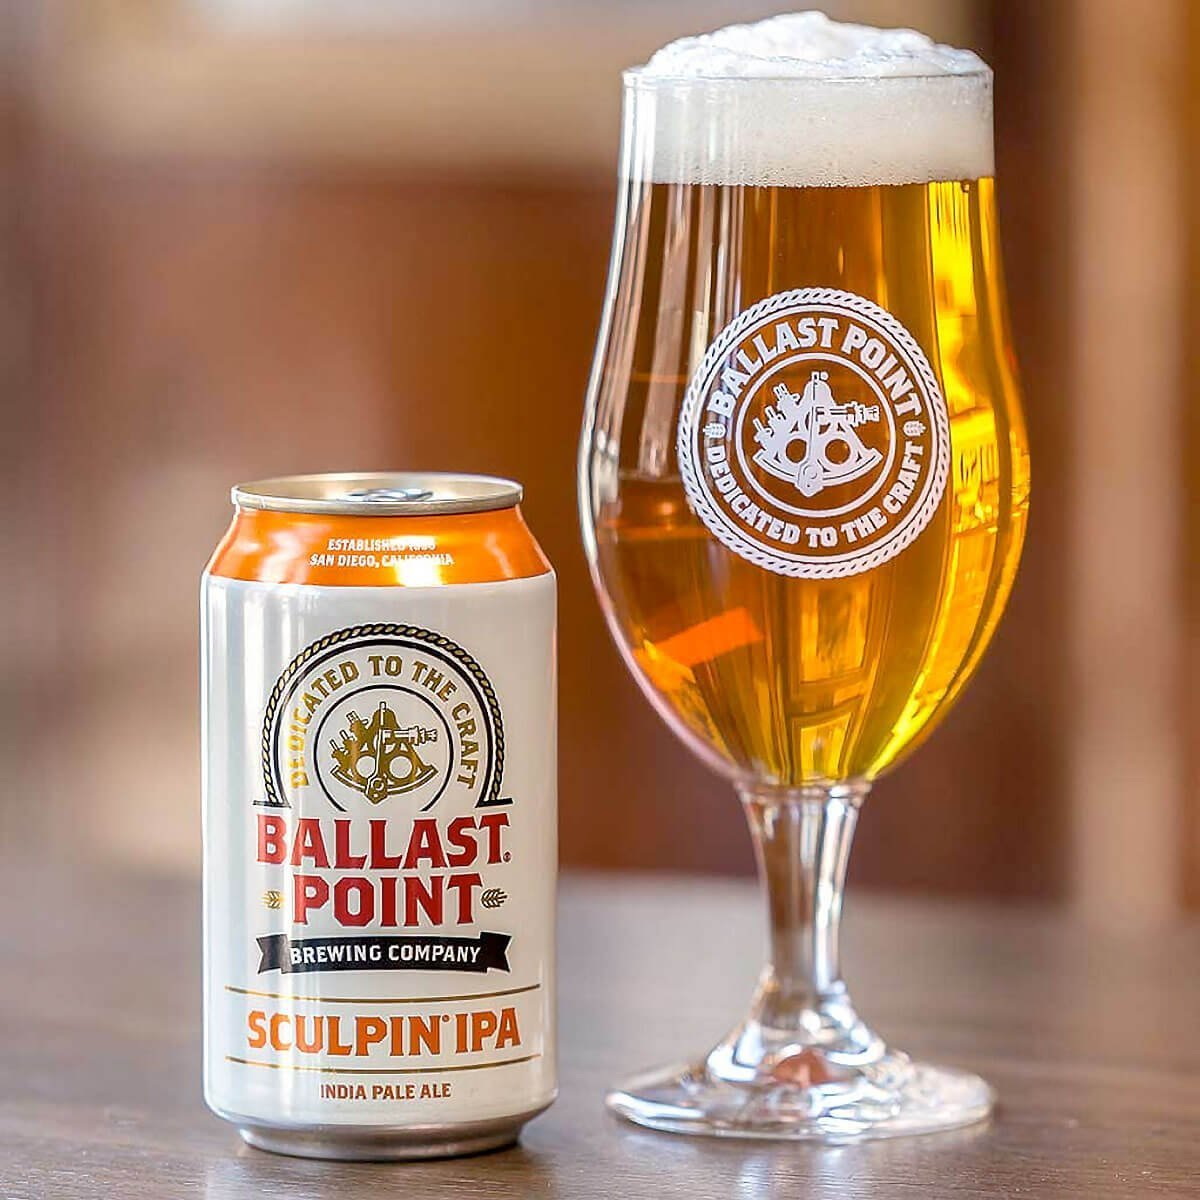 12 oz. Can of Sculpin IPA and Ballast Point Brewing Company Branded Tulip Glass